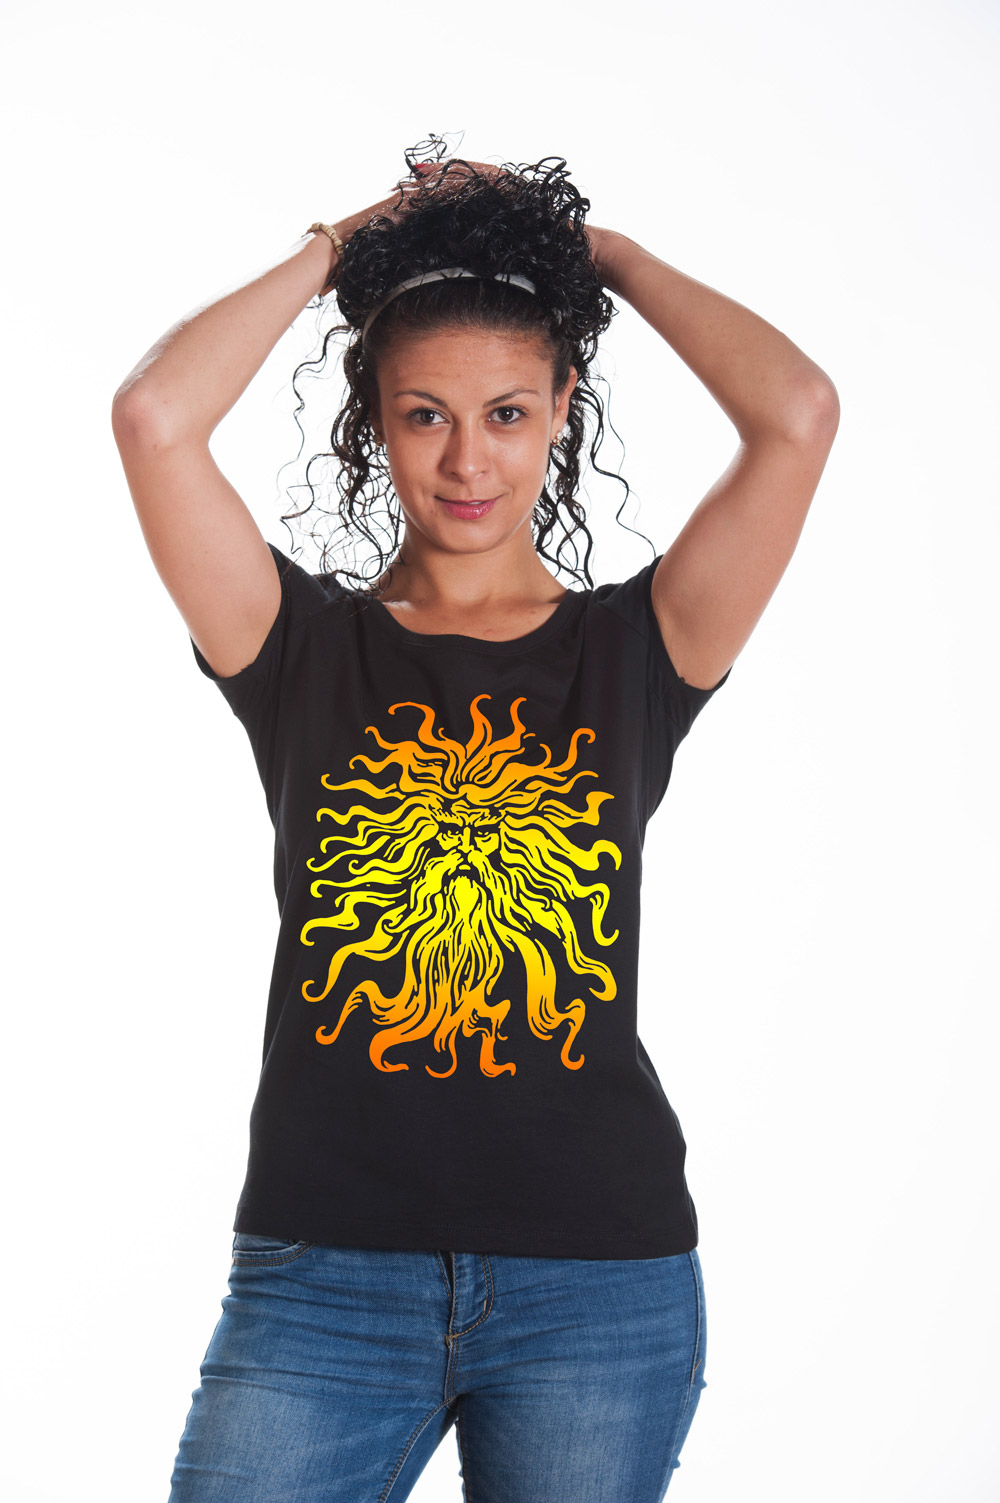 Ogma Printed T shirt | Celtic Tee | Celtic God Tshirt | Unisex Celtic Shirt